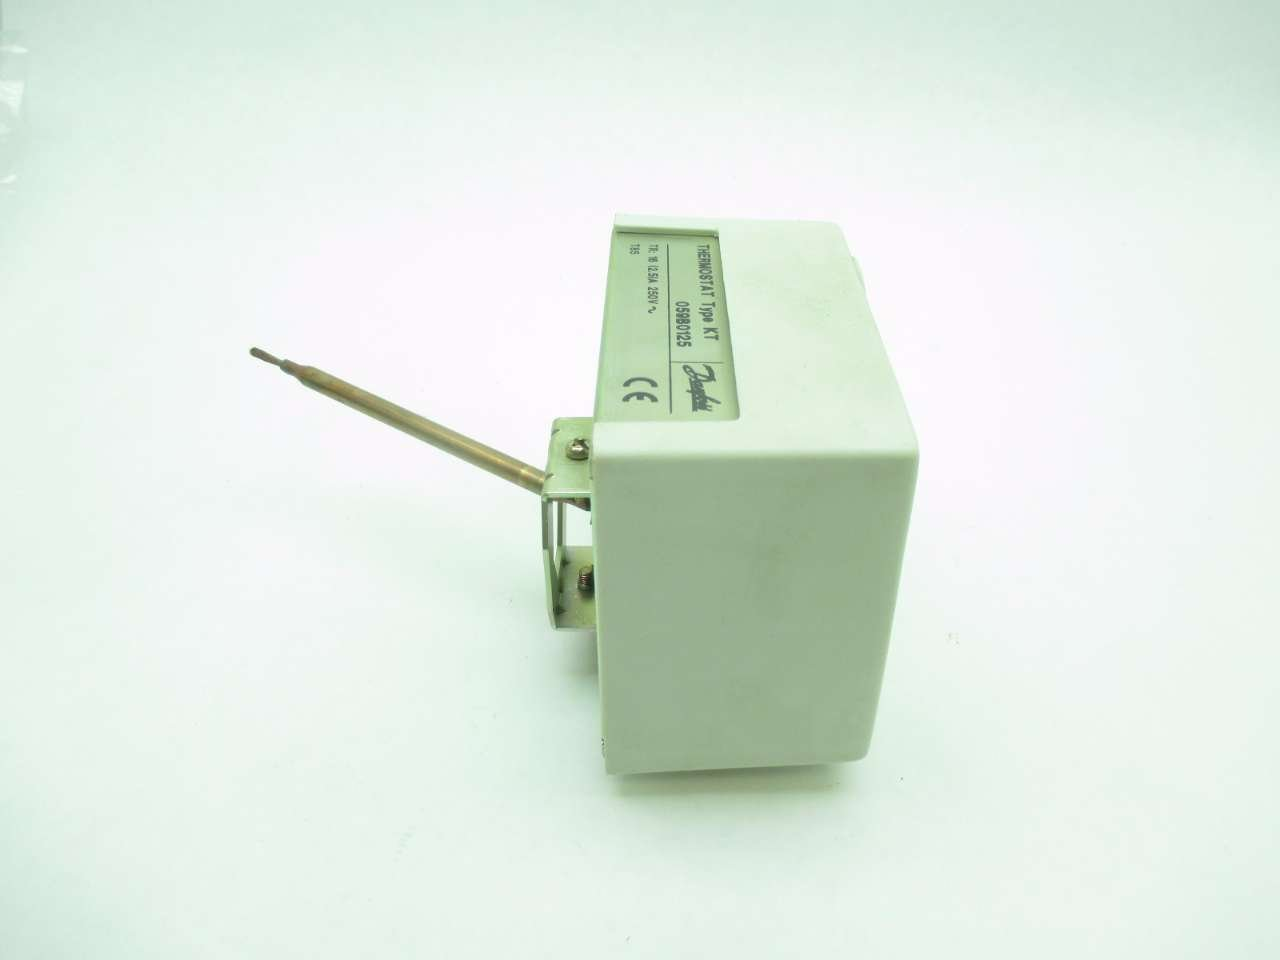 DANFOSS 059B0125 TYPE KT 30-90C REFRIGERATION THERMOSTAT CONTROLLER D540096: Amazon.com: Industrial & Scientific